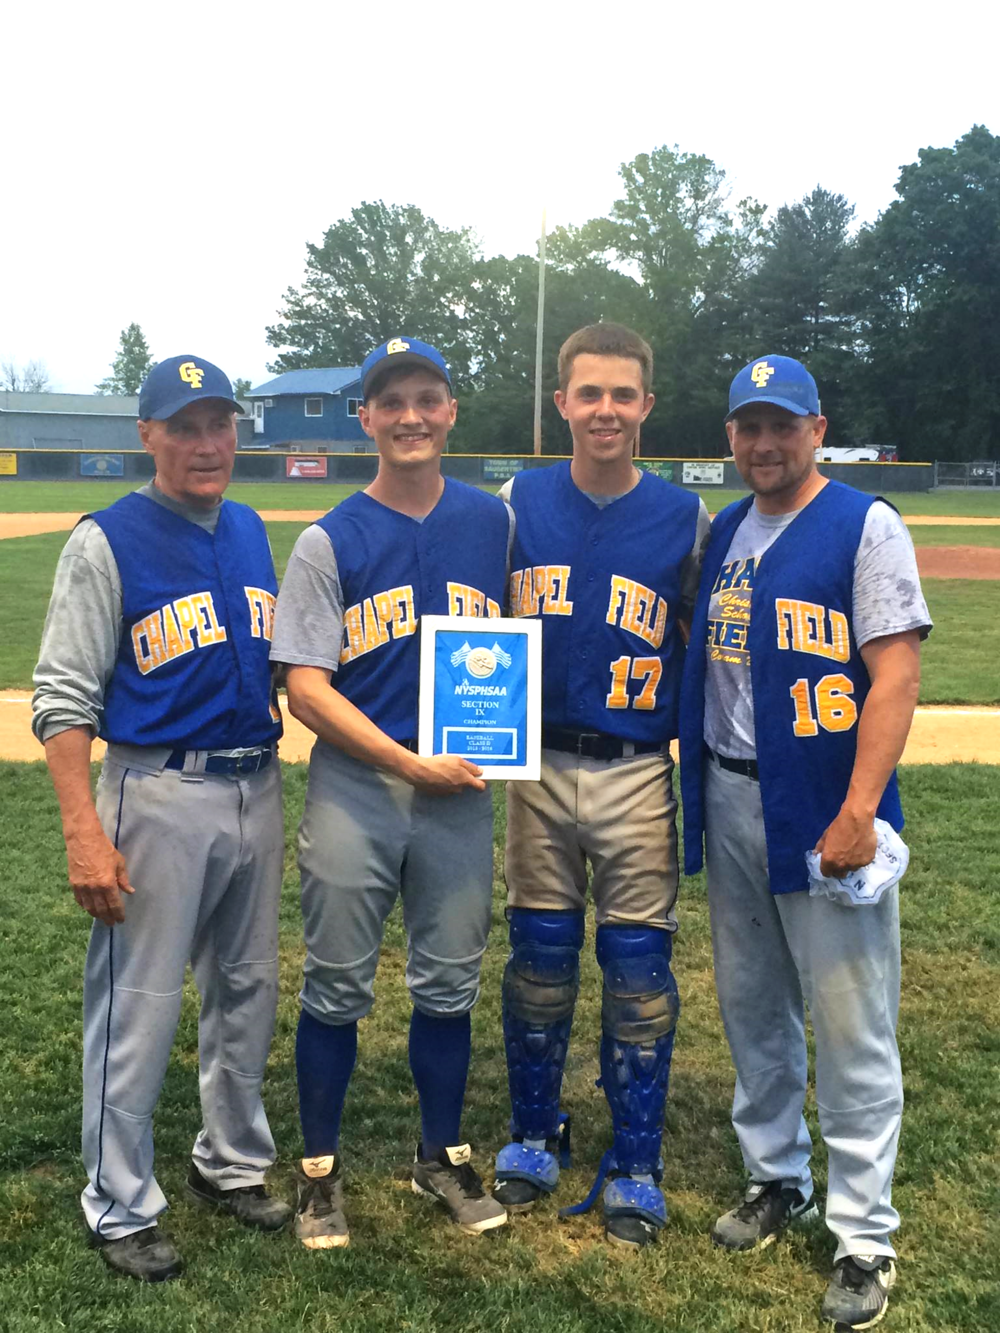 Captains Andy Spanjer and Ethan Jacobsen with coaches holding the Section 9 Championship plaque.